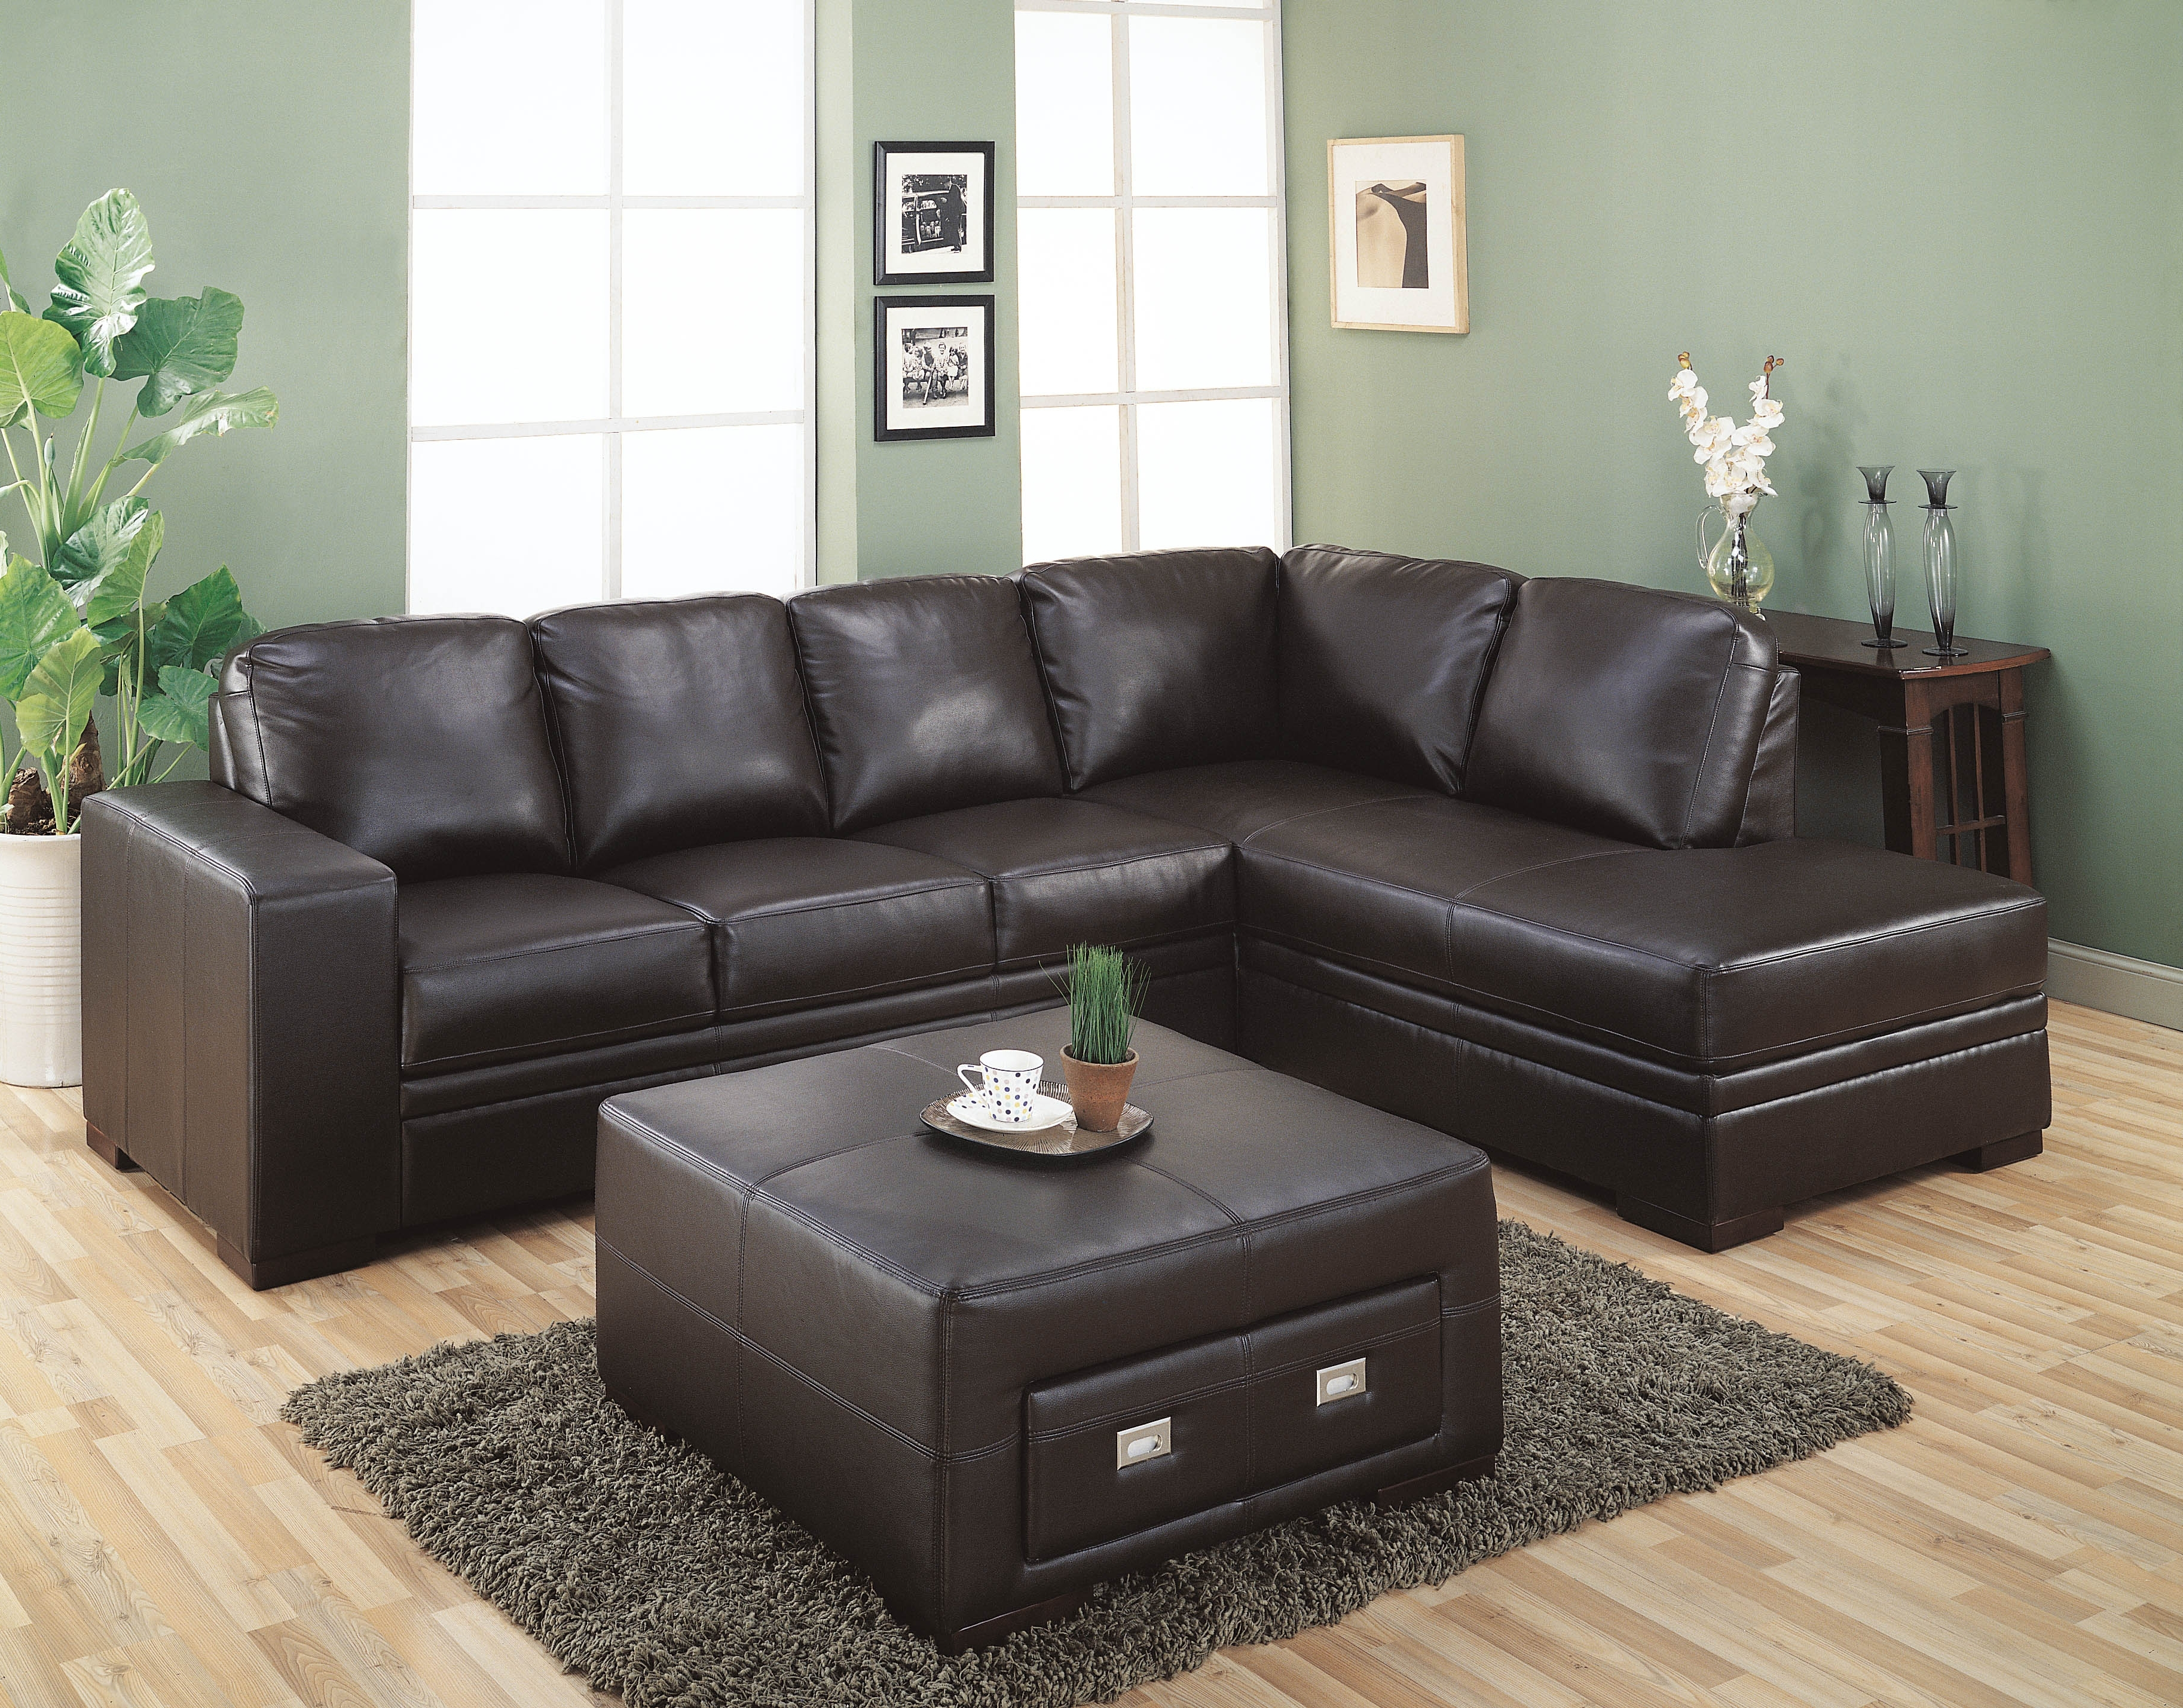 Carehouse In Chocolate Brown Sectional Sofas (View 5 of 15)